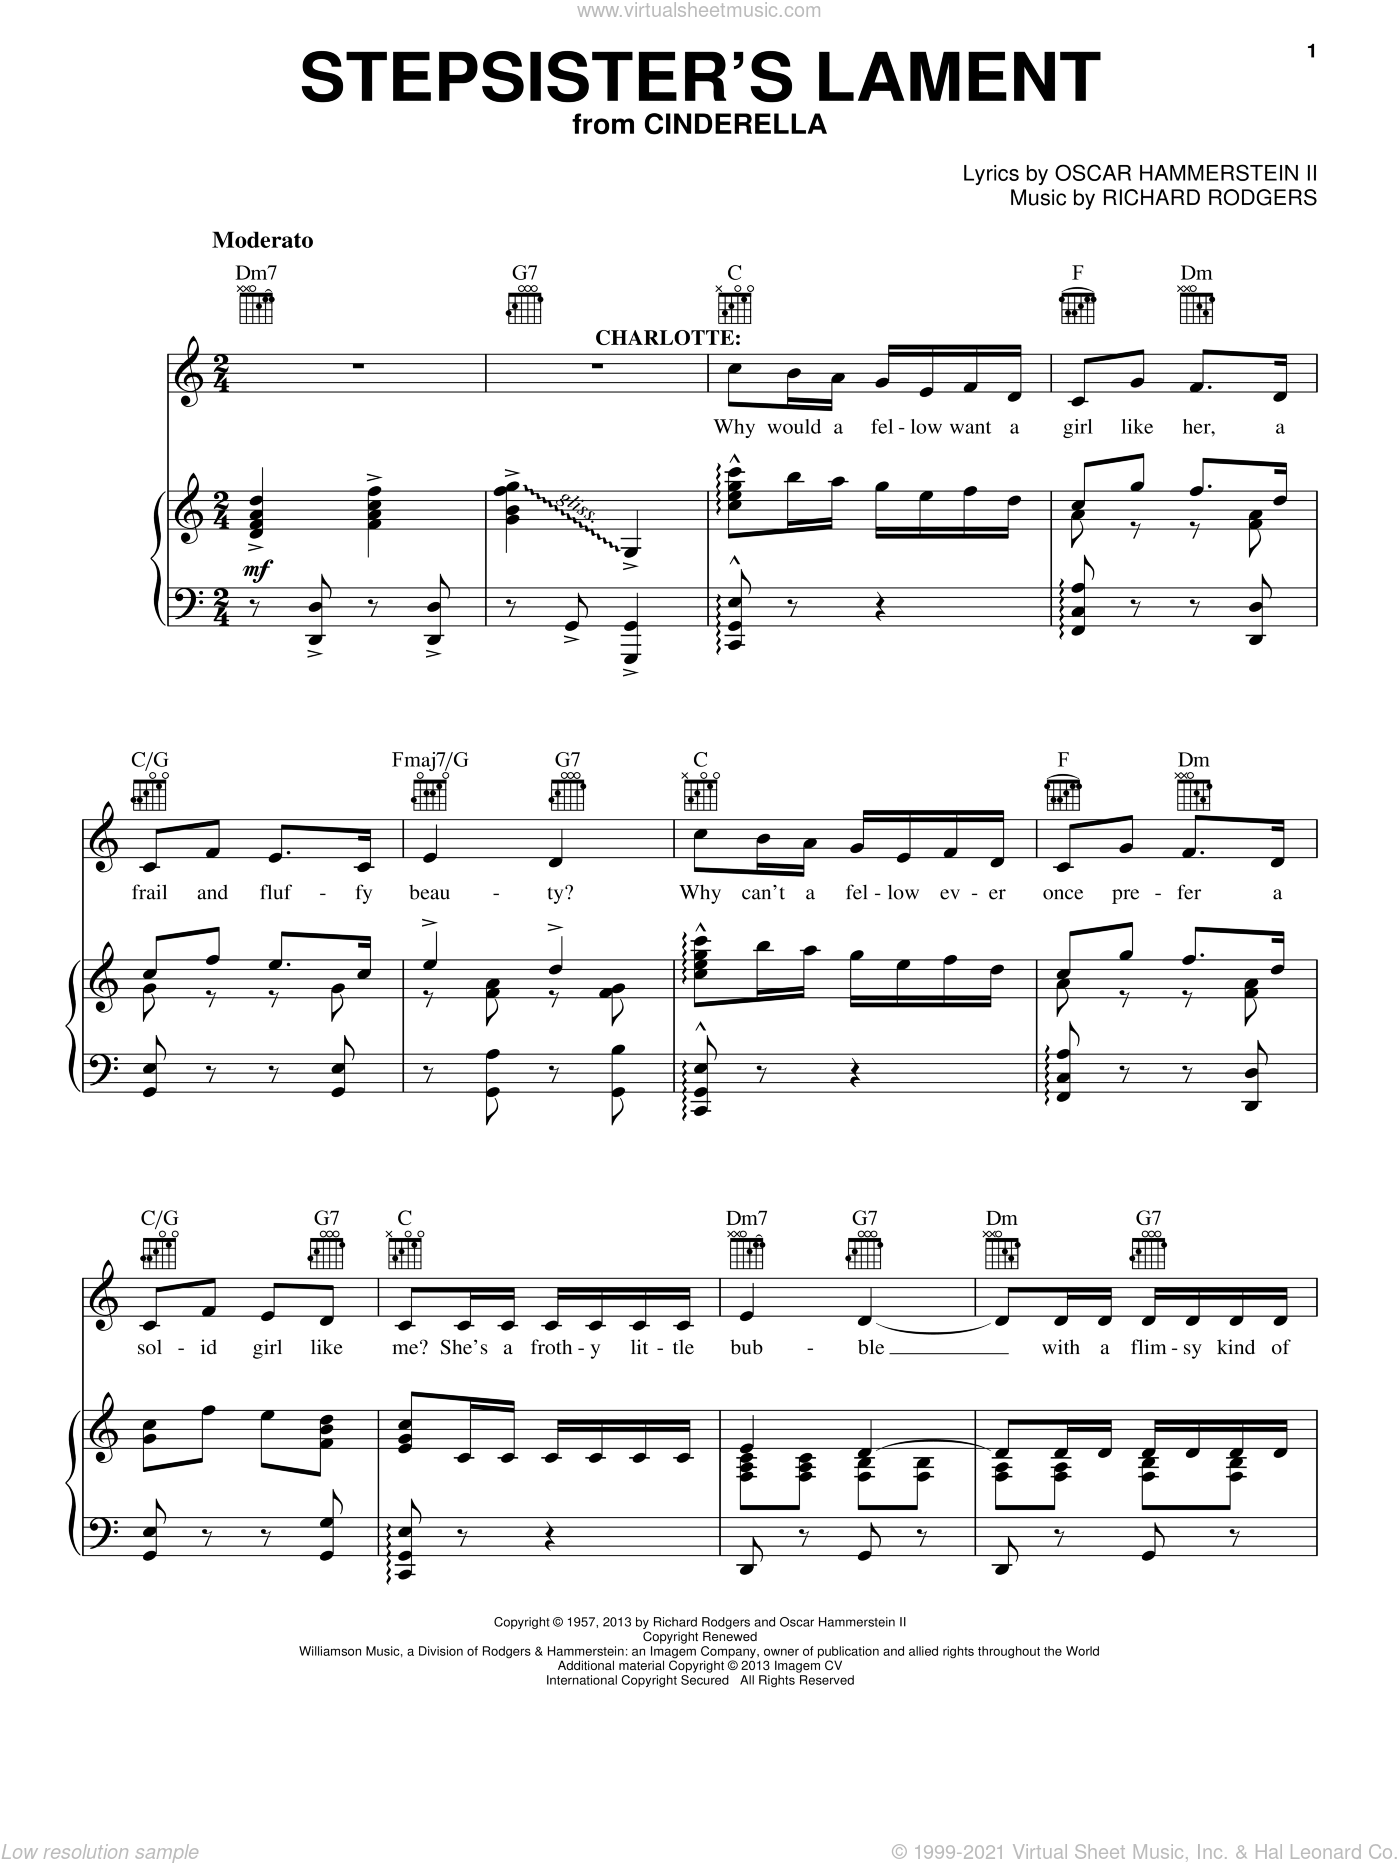 Stepsisters' Lament sheet music for voice, piano or guitar by Rodgers & Hammerstein, Oscar II Hammerstein and Richard Rodgers, intermediate voice, piano or guitar. Score Image Preview.